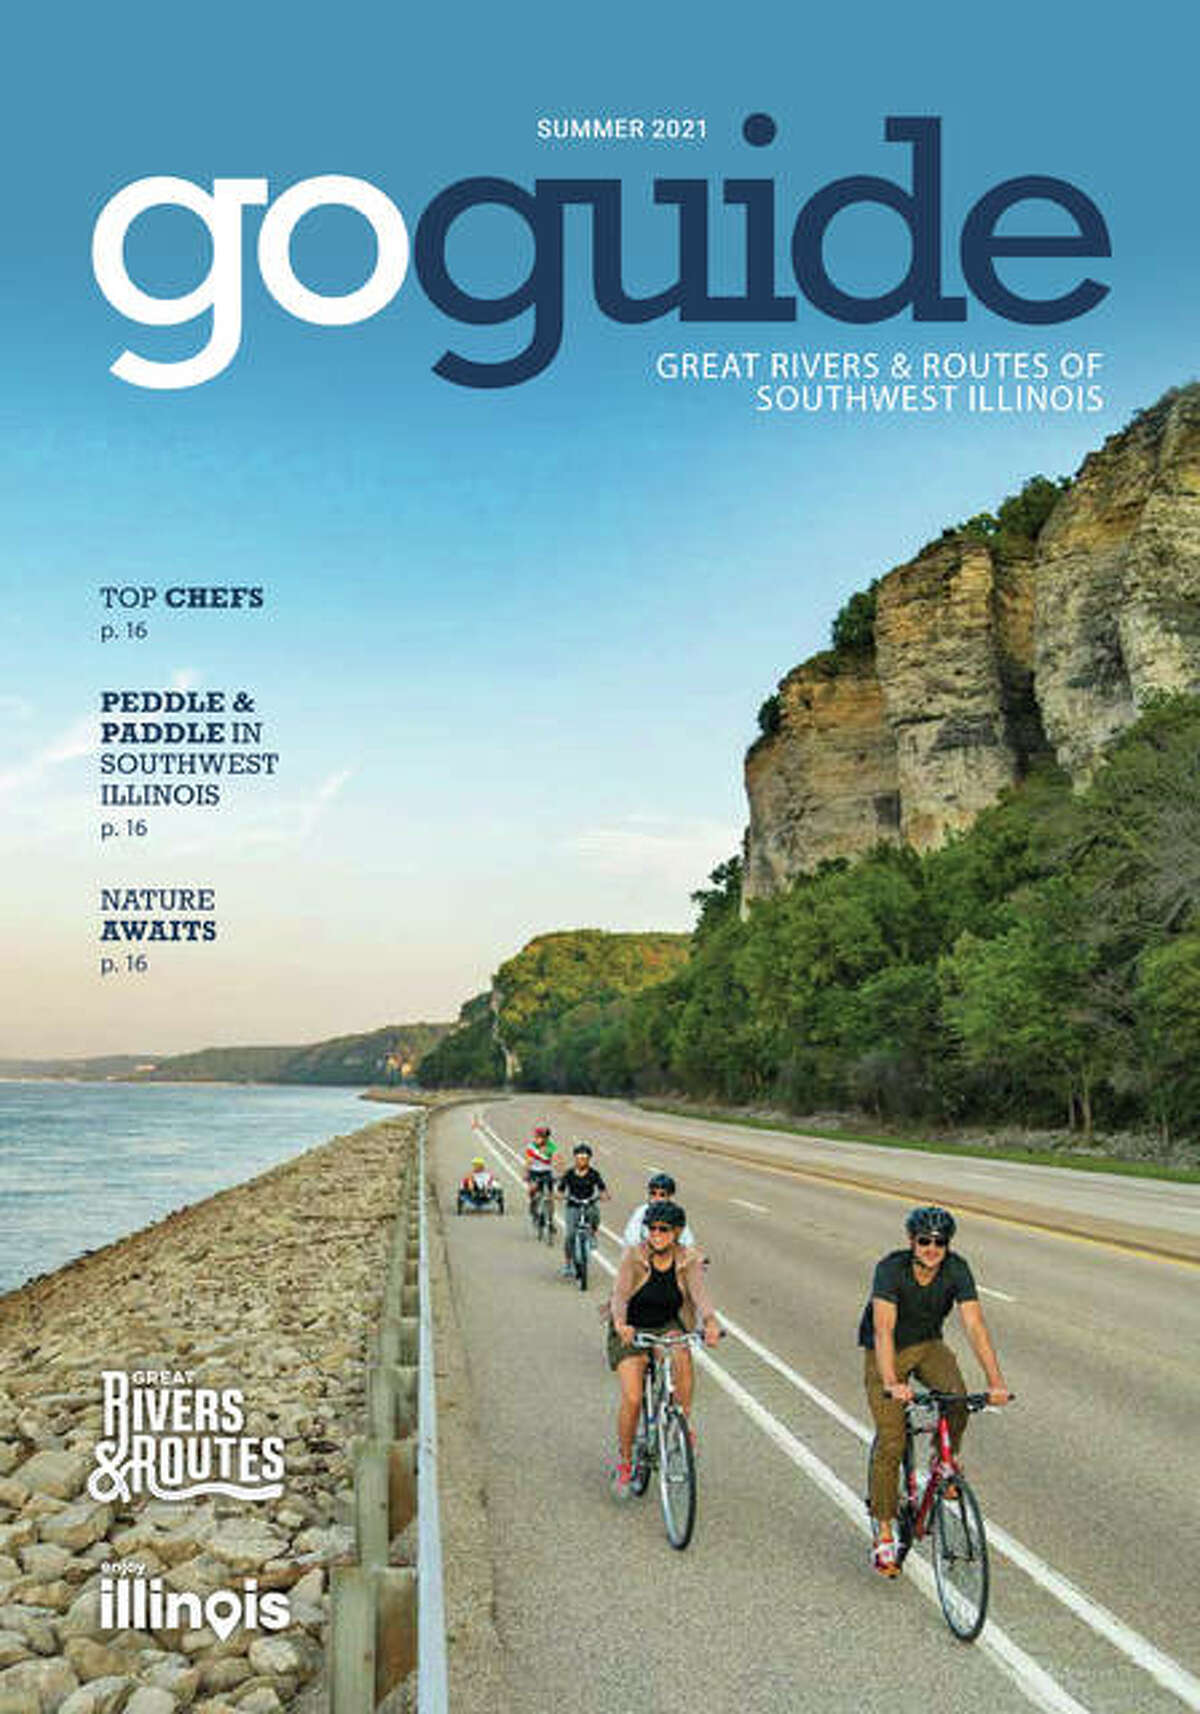 The Great Rivers & Routes Tourism Bureau's new Go Guide magazine focusing on travel experiences in the six-county region is now available online and area businesses.